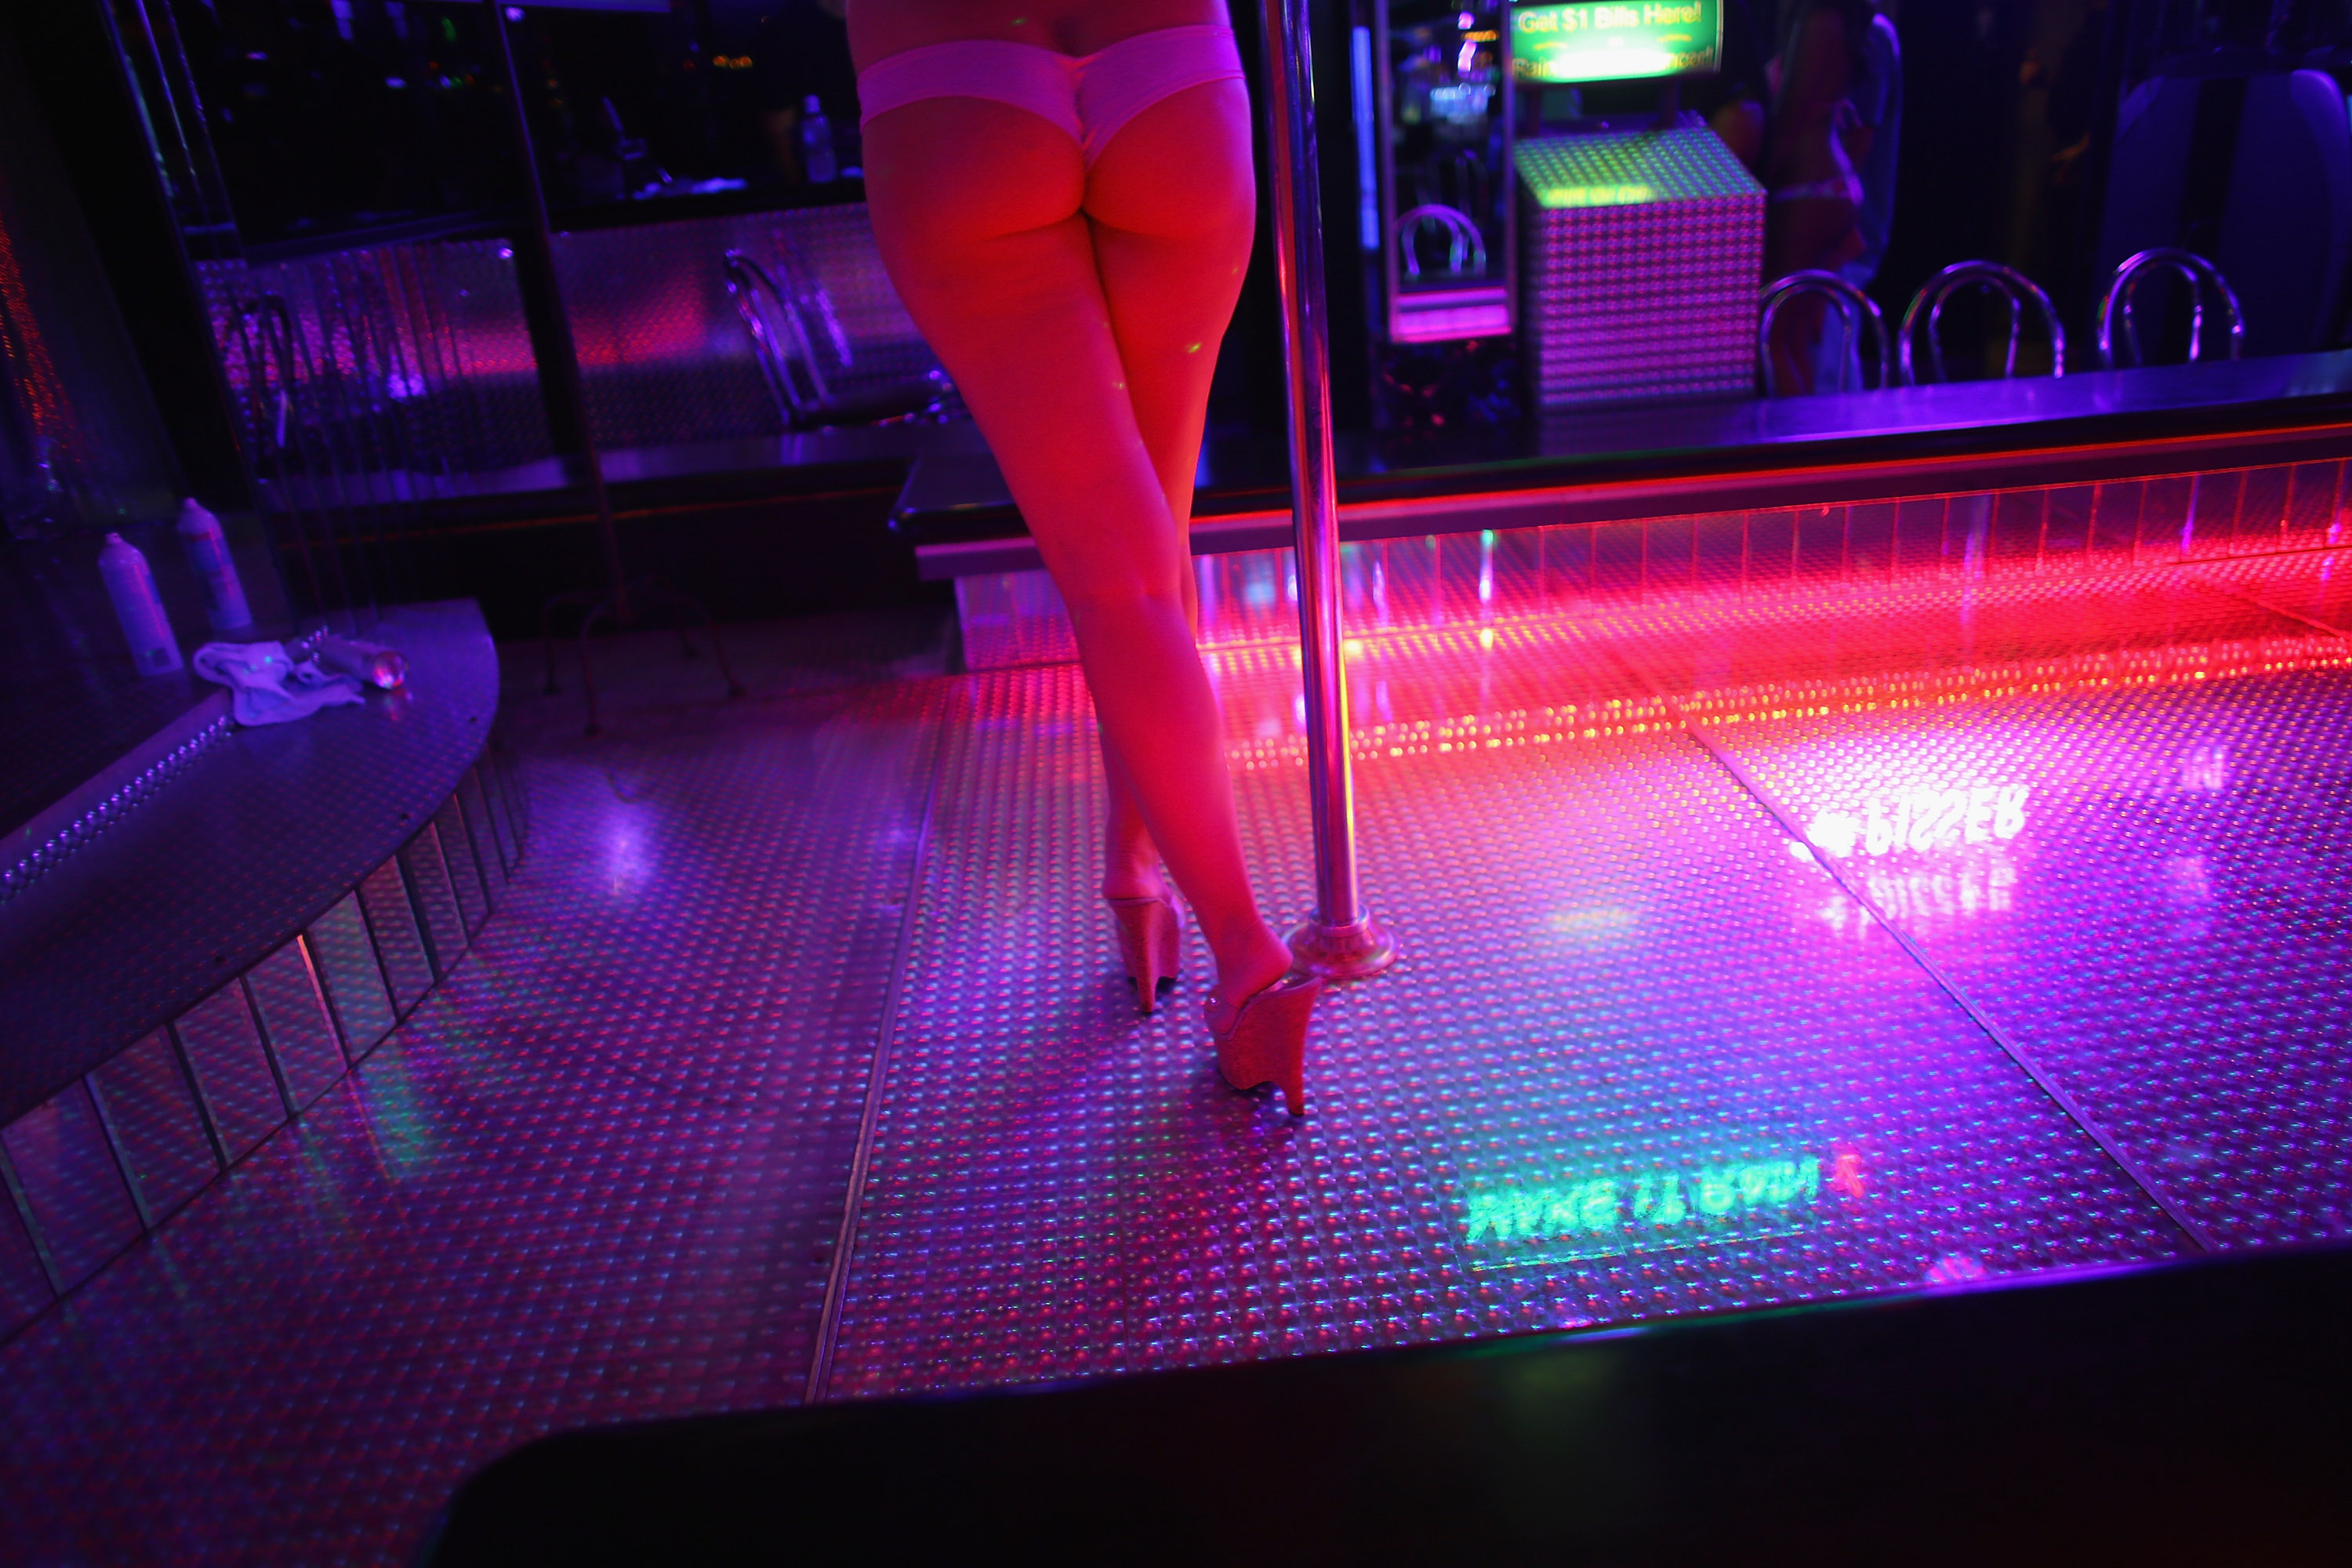 Stripper Reveals The Tricks She Used To Get Men To Blow Their Cash